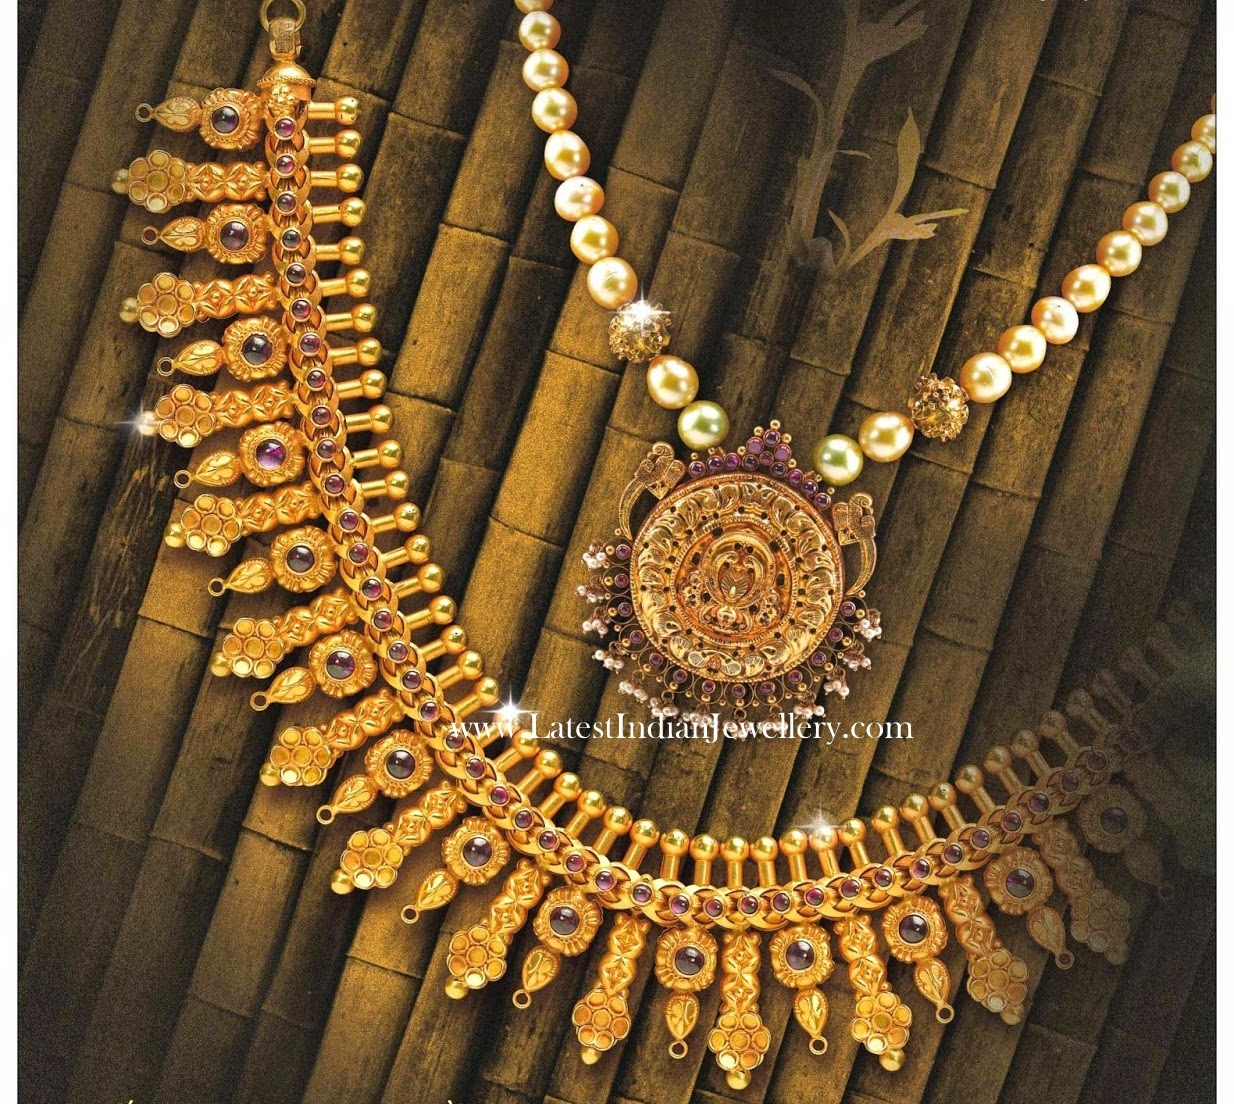 Divine Indian Gold Jewellery